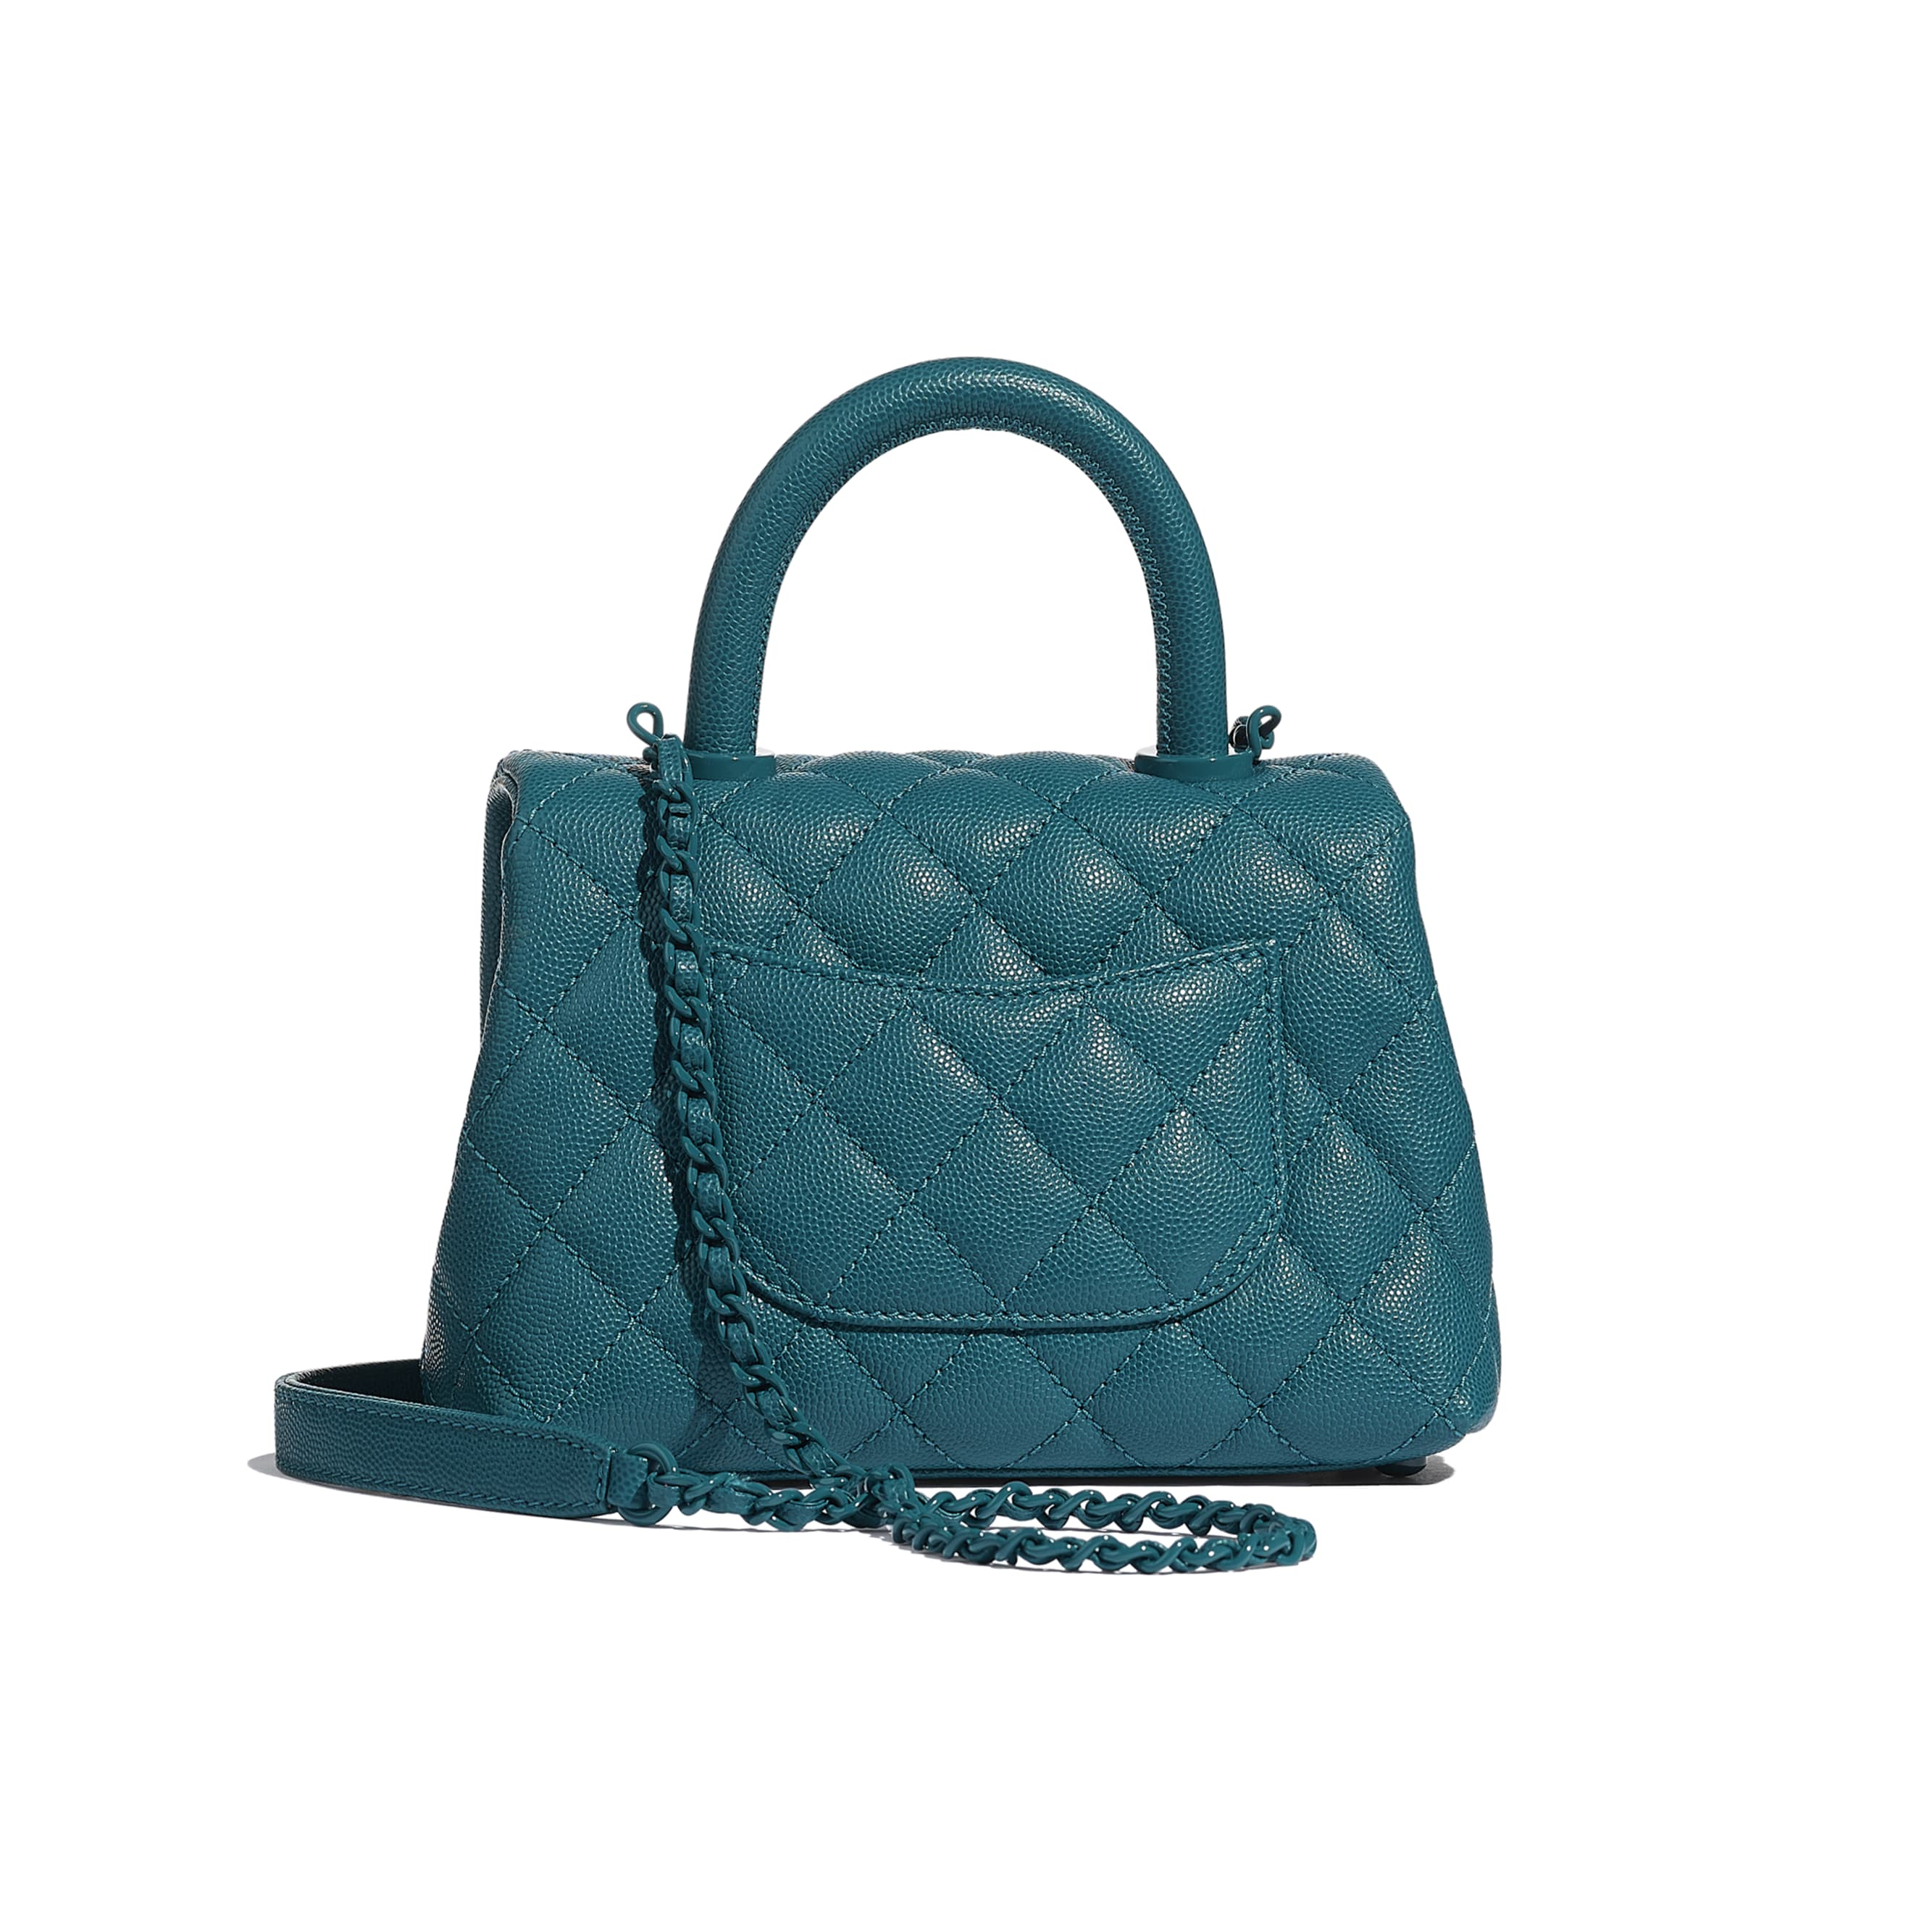 Mini Flap Bag with Handle - Turquoise - Grained Calfskin & Lacquered Metal - CHANEL - Alternative view - see standard sized version